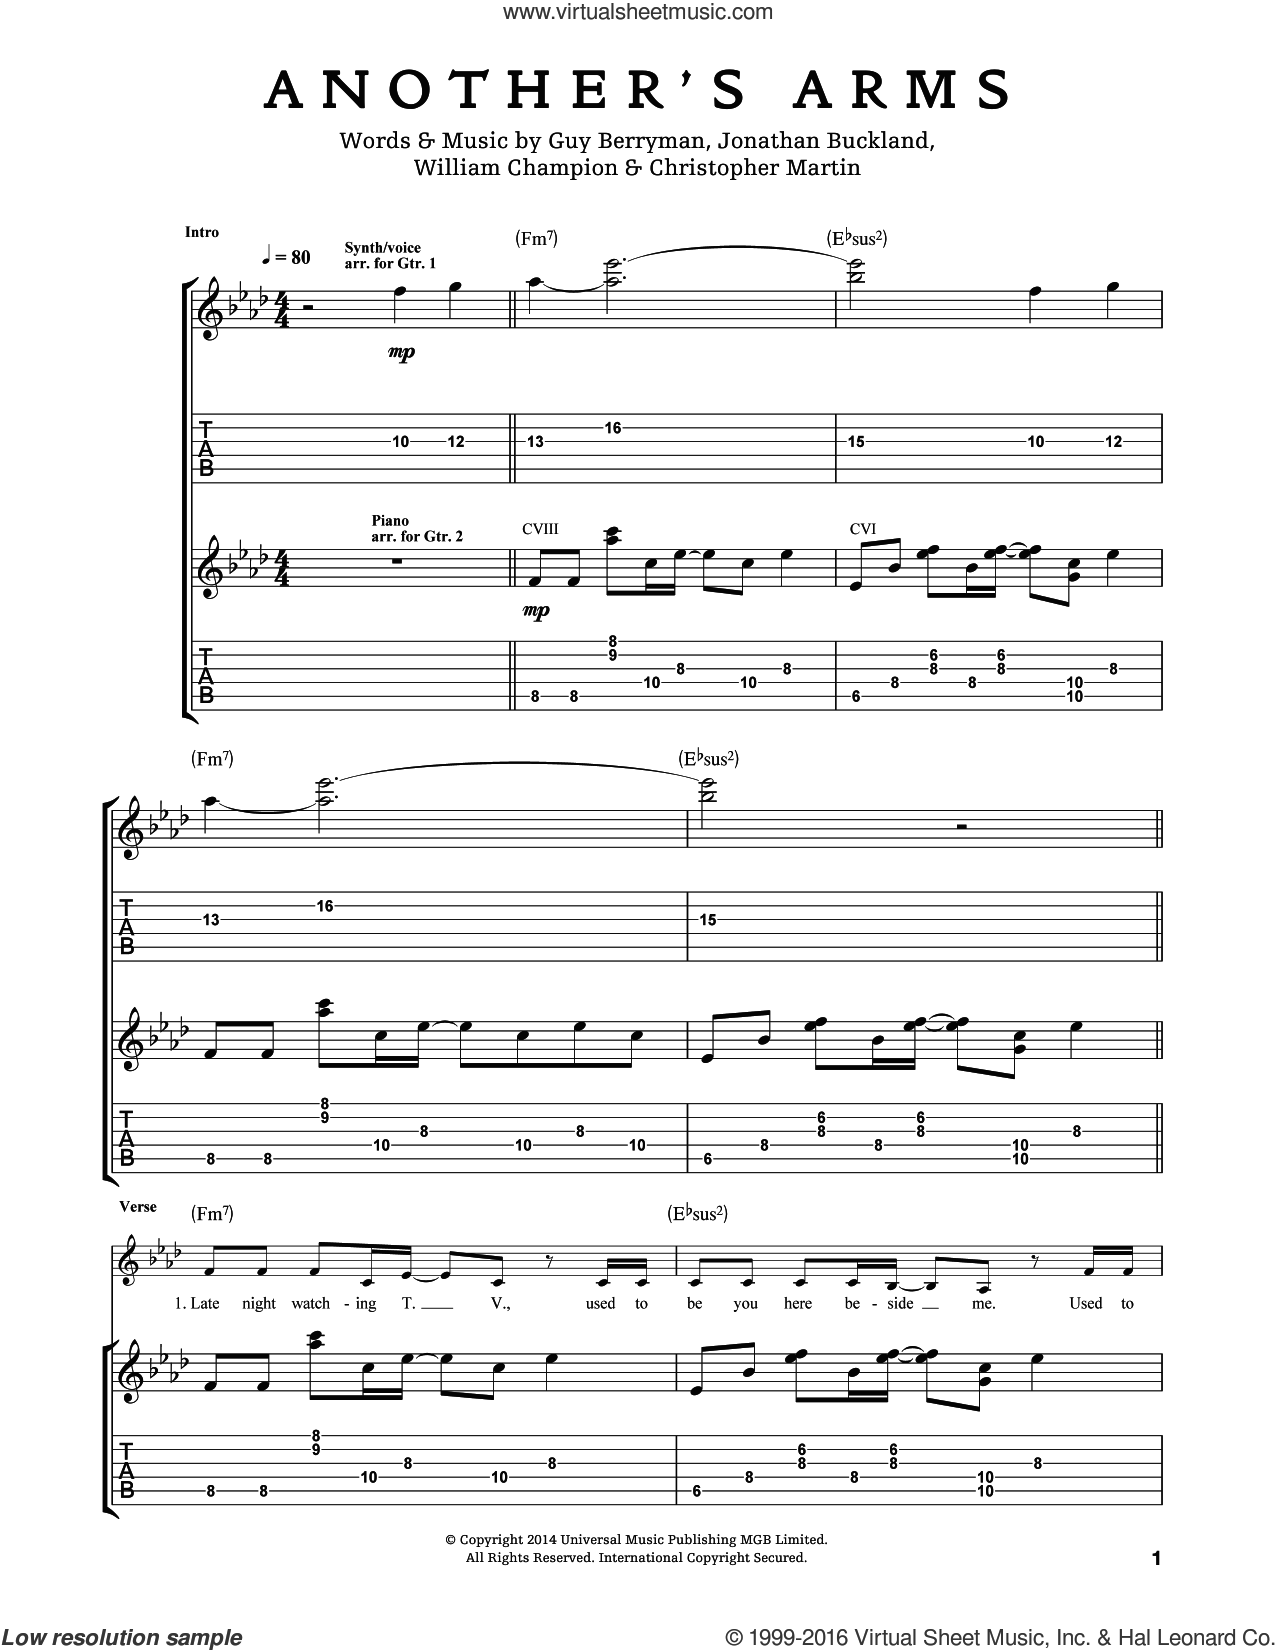 Another's Arms sheet music for guitar (tablature) by Chris Martin, Coldplay, Guy Berryman, Jon Buckland and Will Champion, intermediate skill level